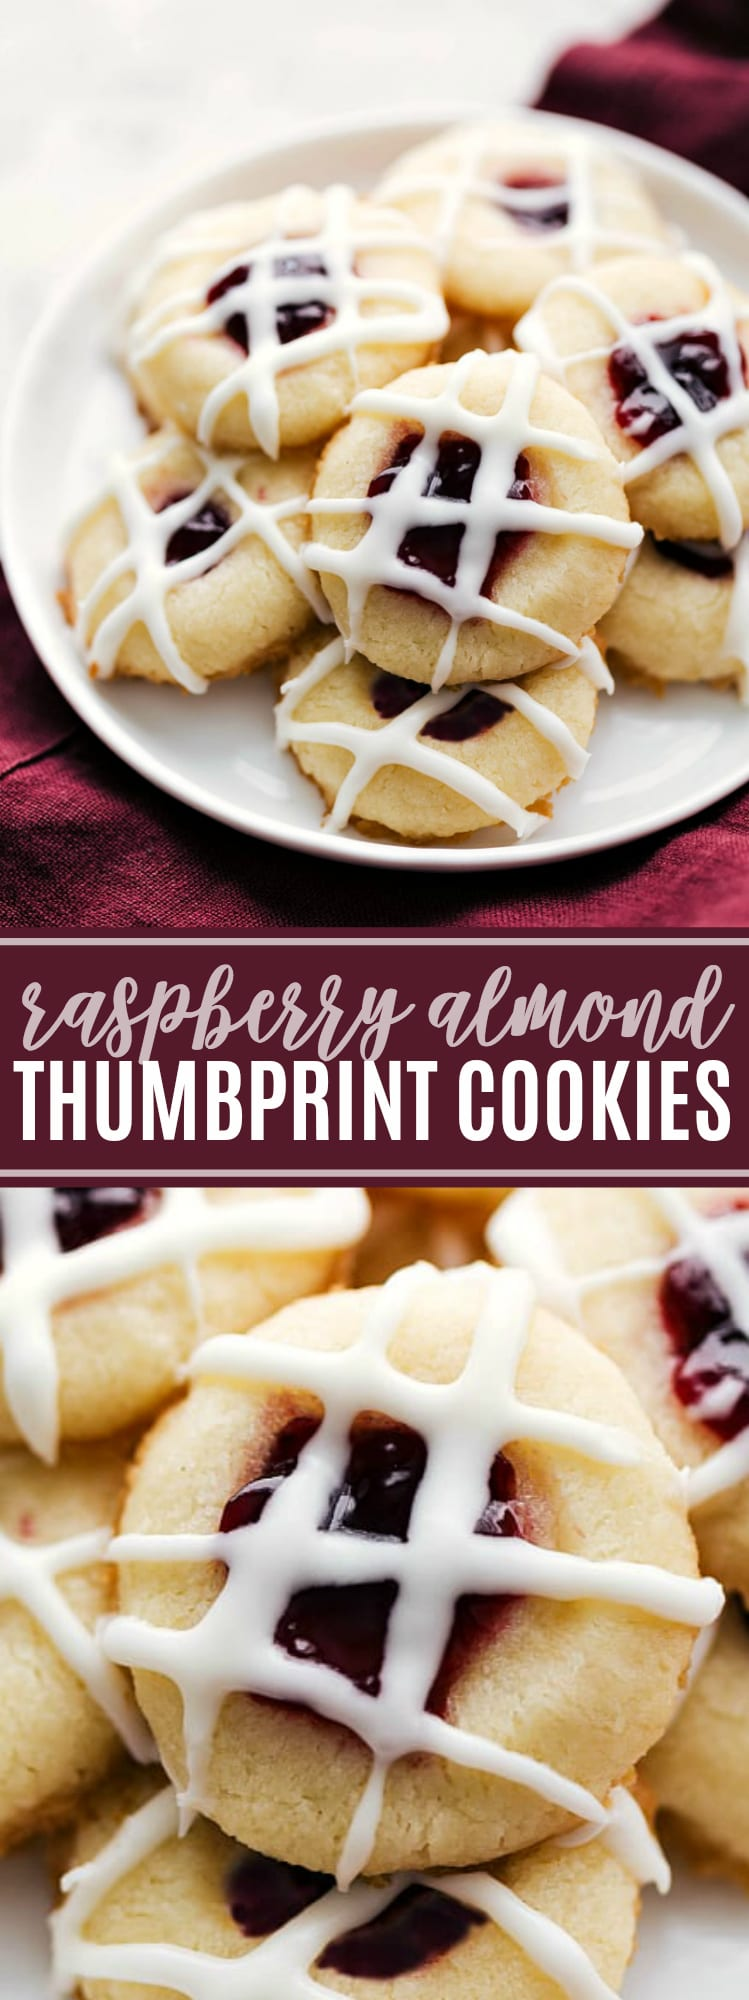 Amazing raspberry-filled and almond-flavored shortbread thumbprint cookies. These jam thumbprint cookies are irresistiblygood and perfect for a holiday cookie platter! Plus I'm sharing all my secrets to making these cookies the best - from what jam to use, to when to chill them, and rolling the cookies in sugar before baking. via chelseasmessyapron.com #raspberry #almond #thumbprint #cookie #cookies #recipe #christmas #exchange #dessert #easy